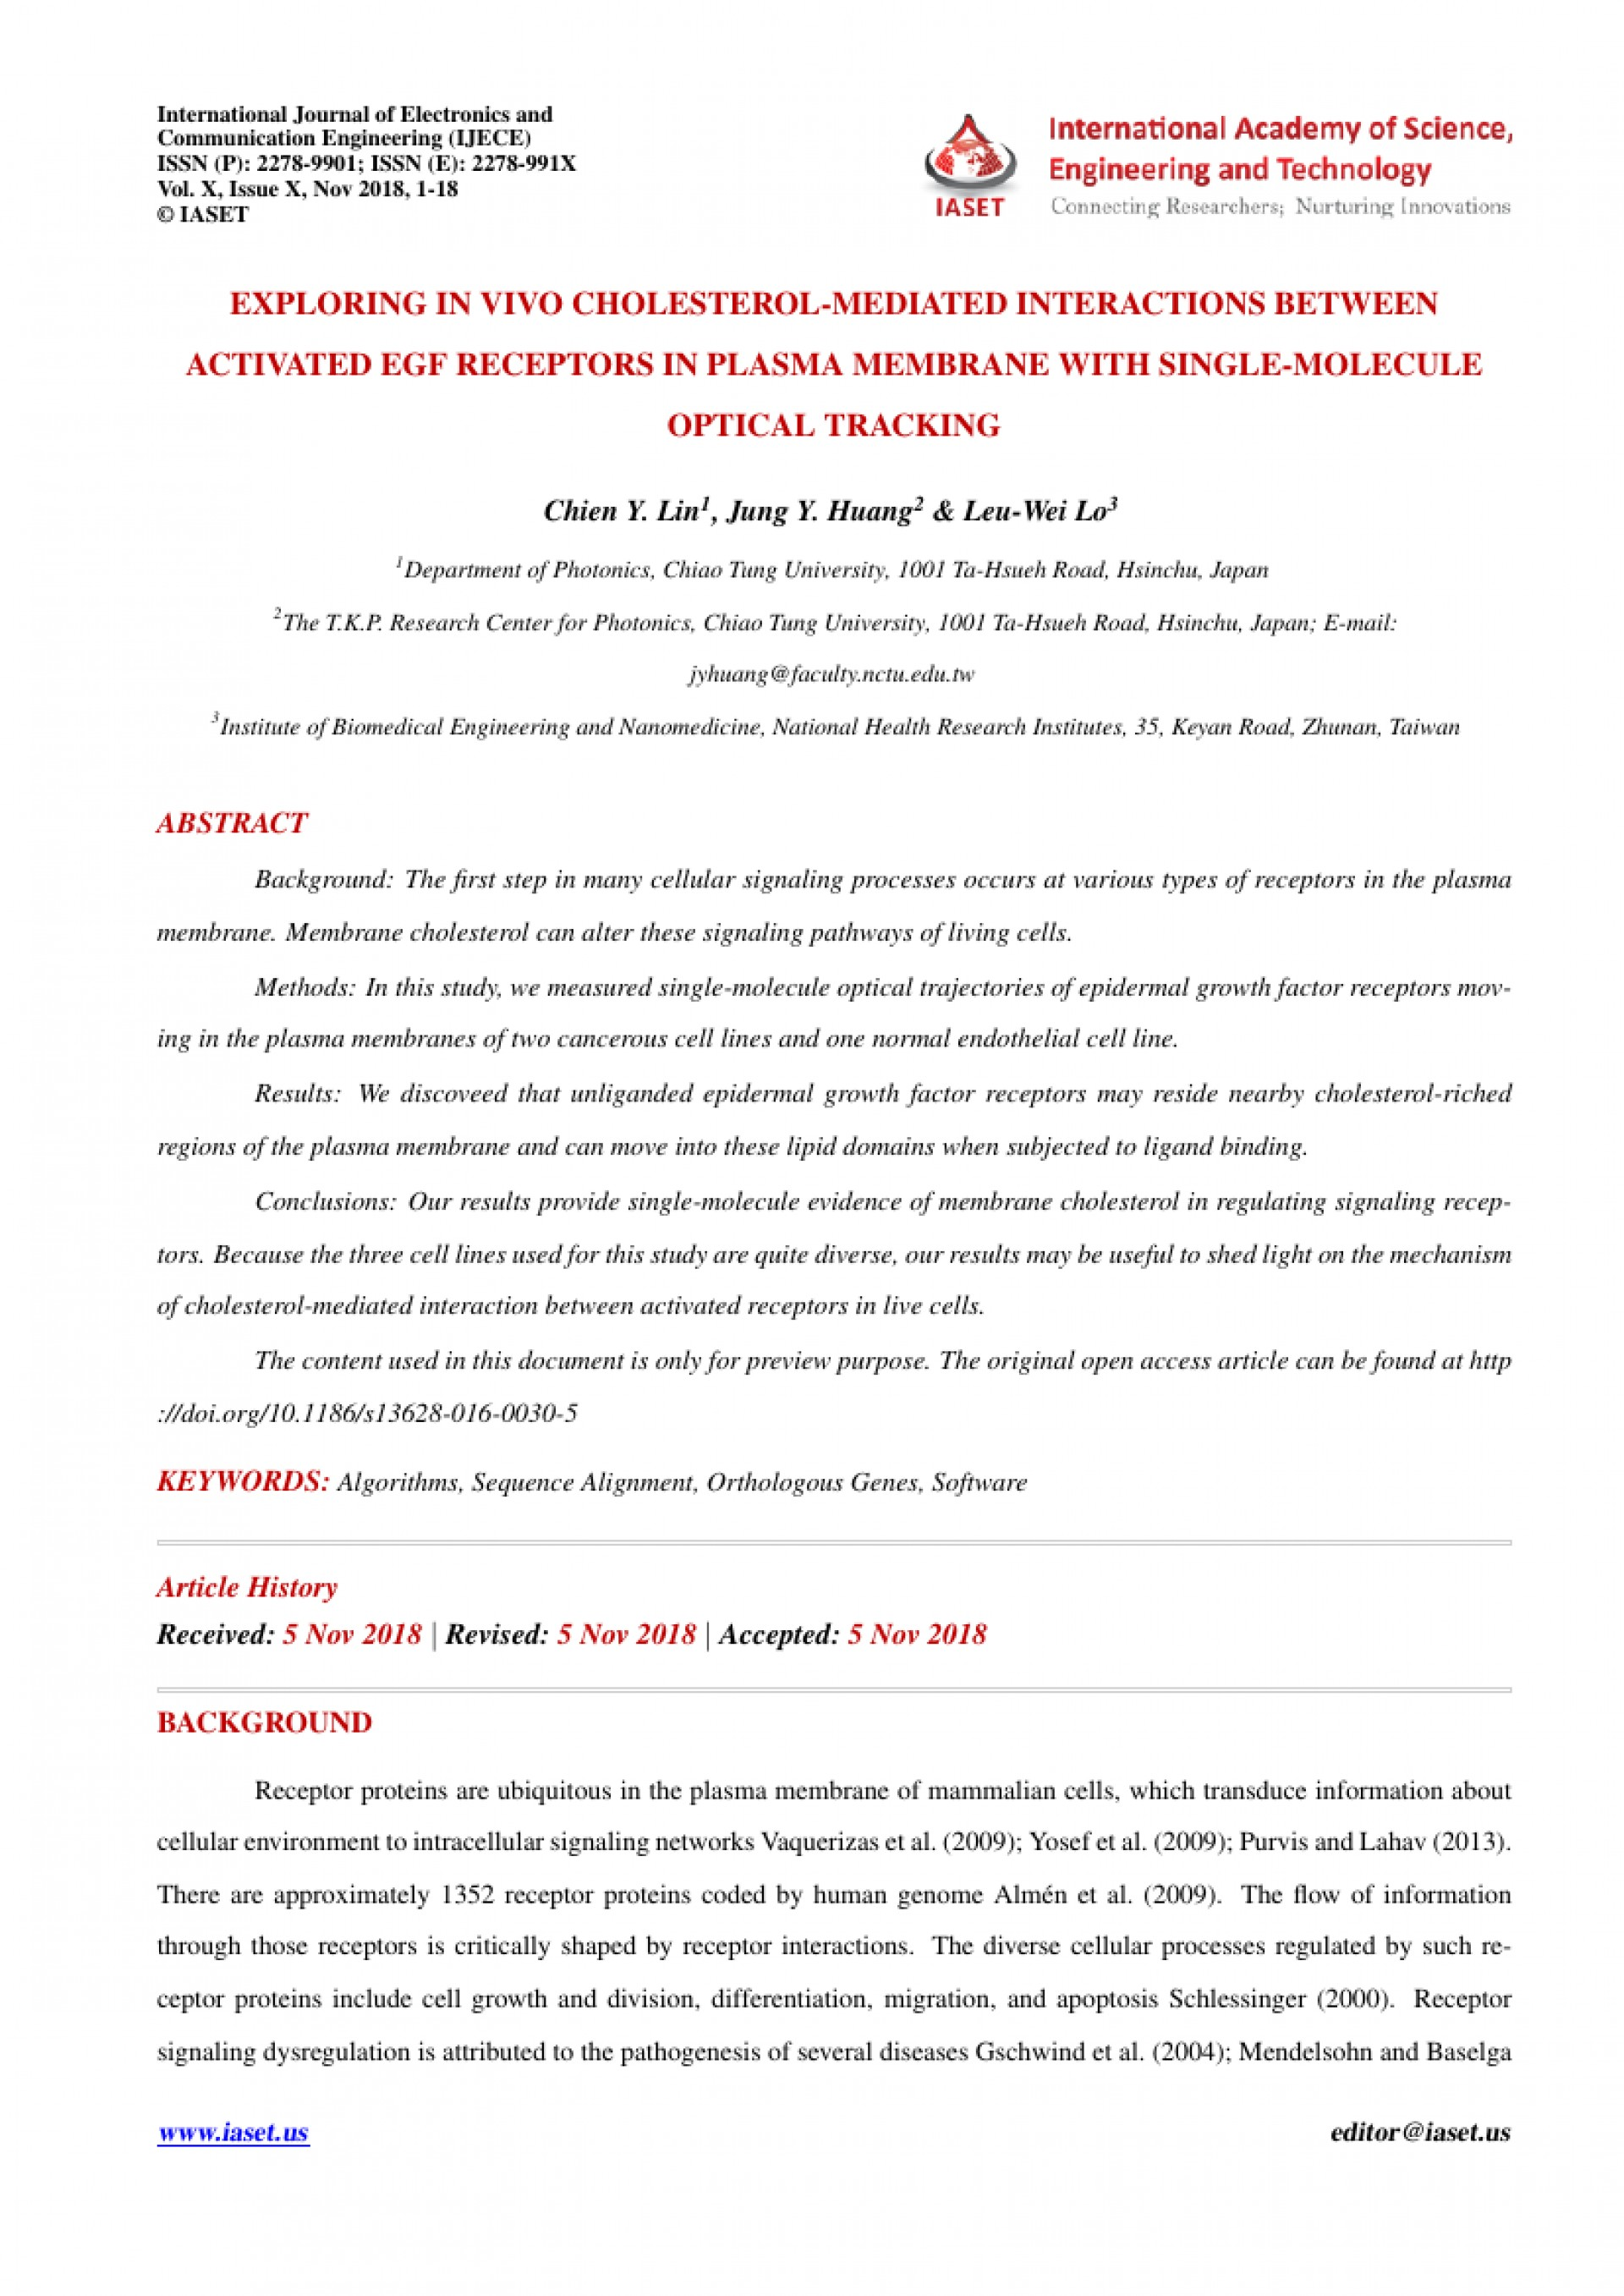 004 How To Get Research Paper Published In International Journal Article Frightening 1920